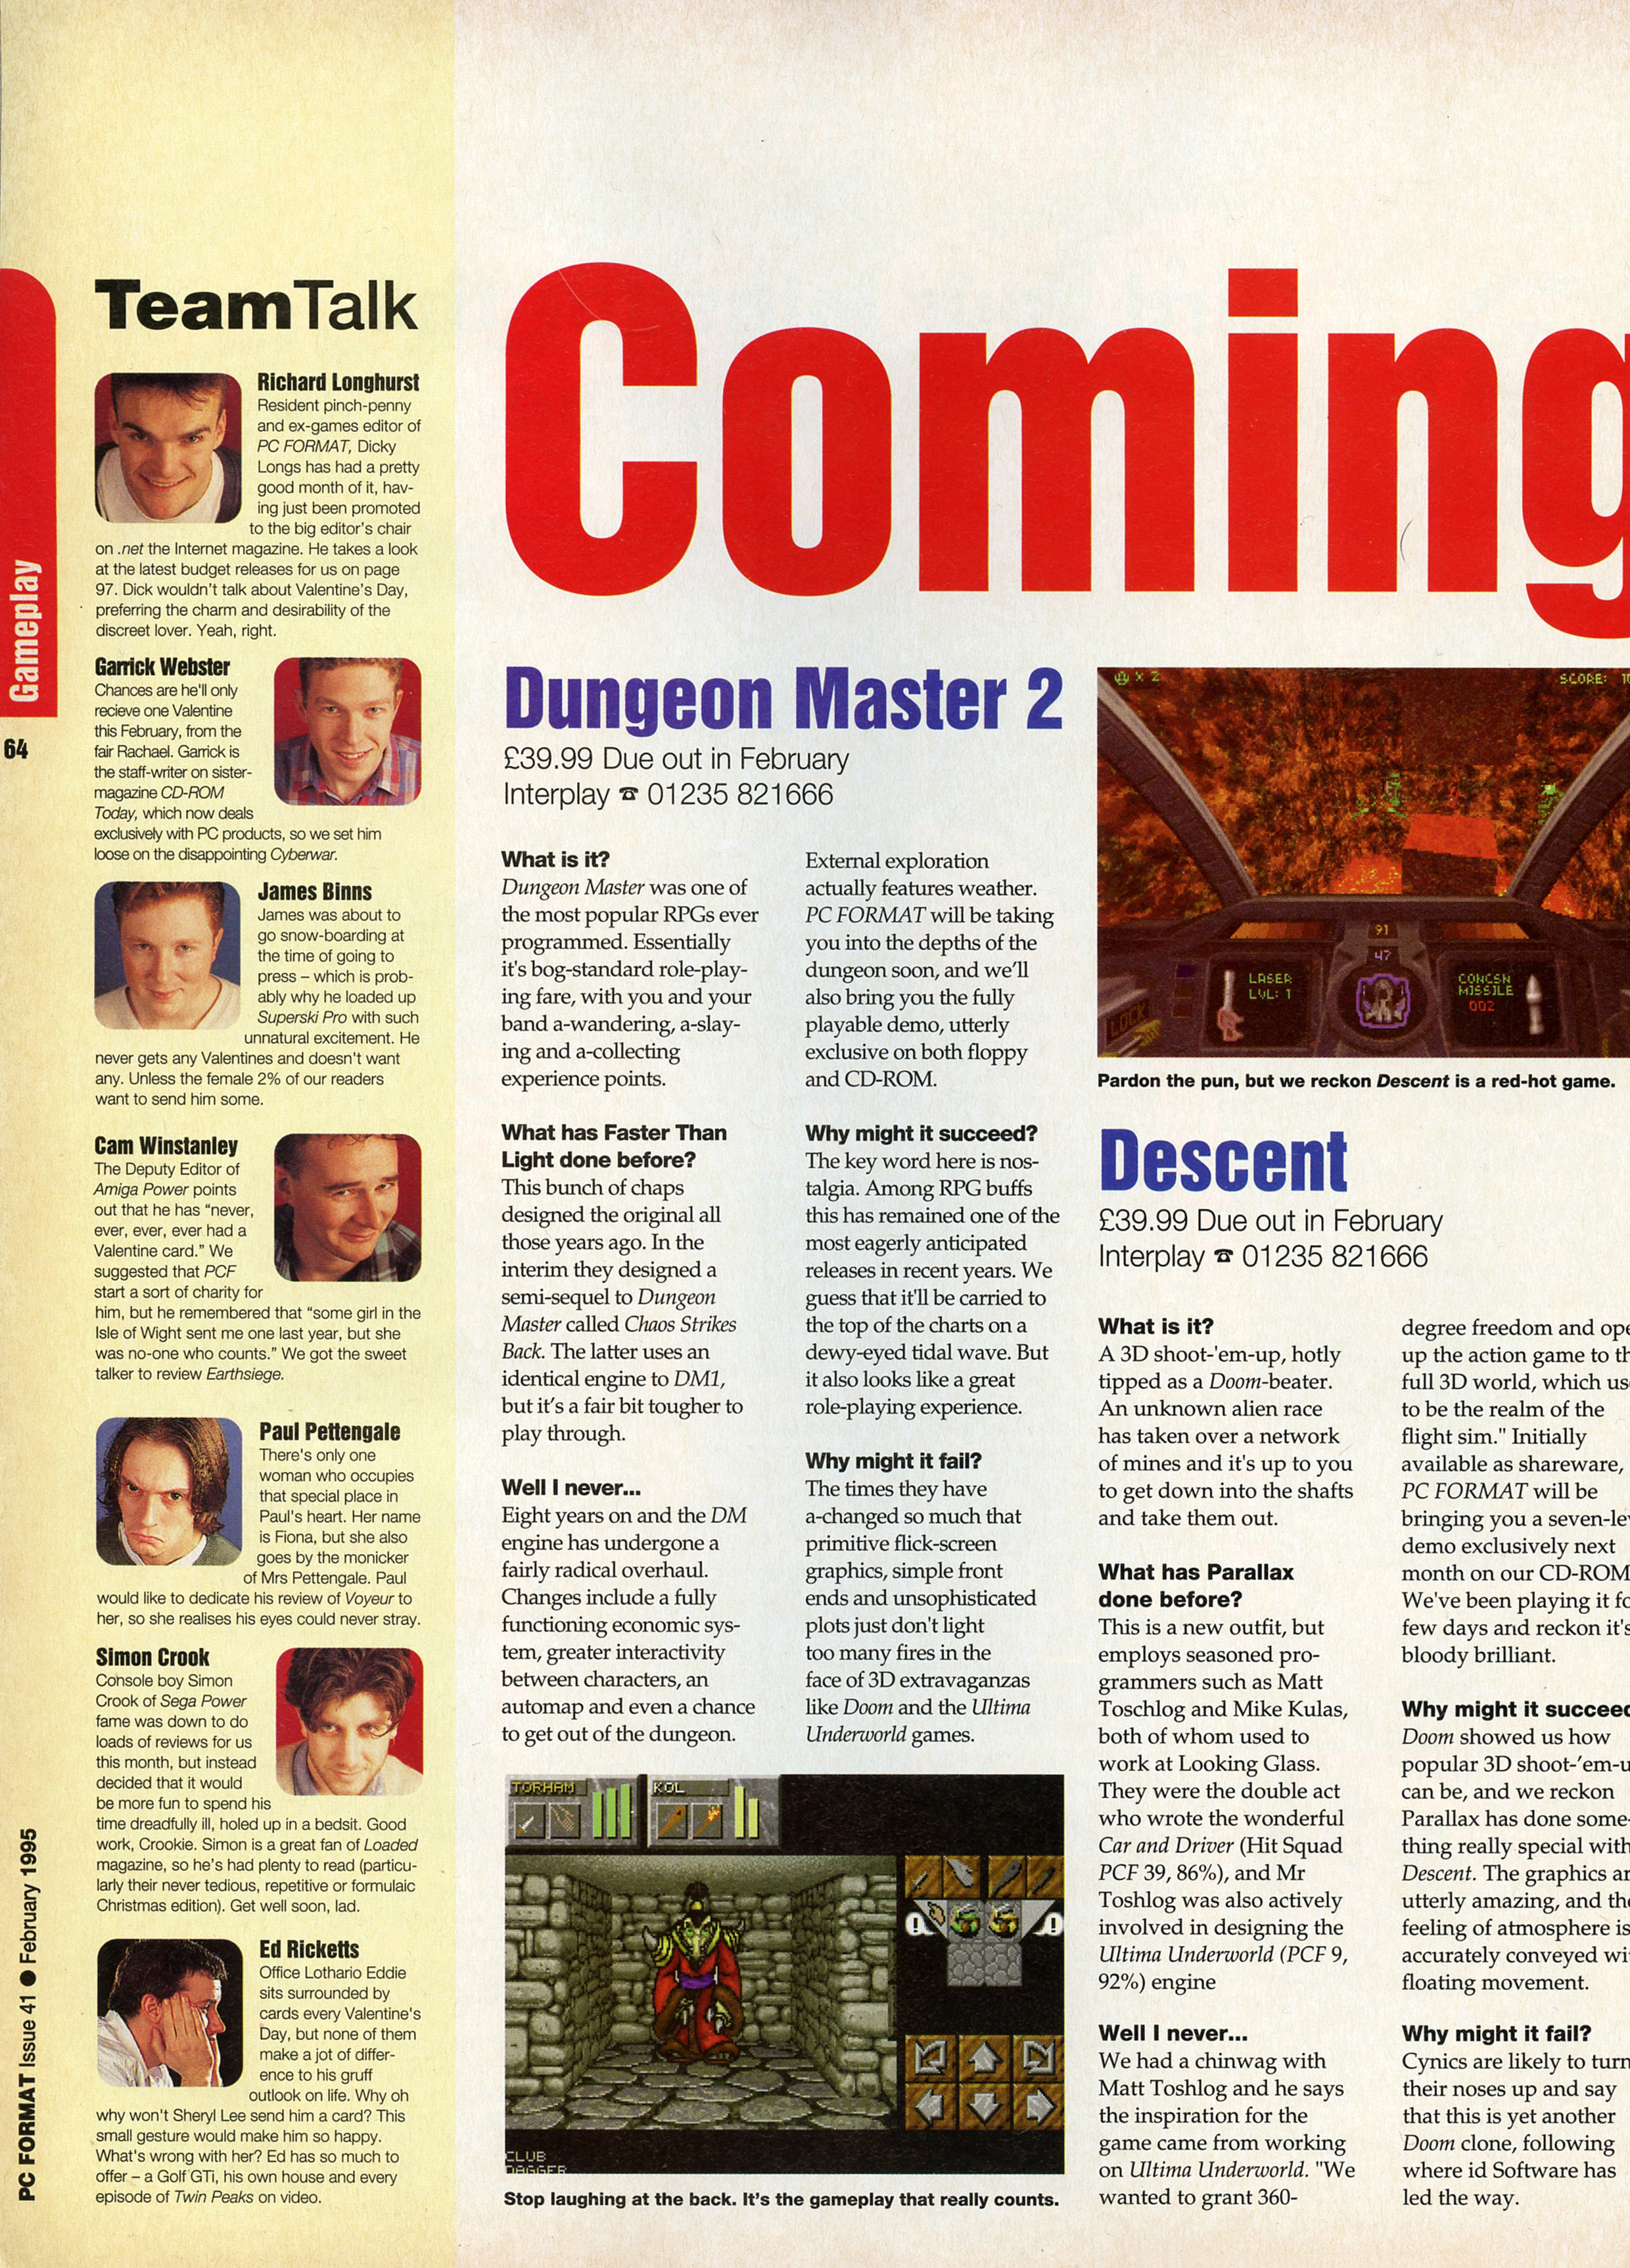 Dungeon Master II Preview published in British magazine 'PC Format', Issue #41 February 1995, Page 64